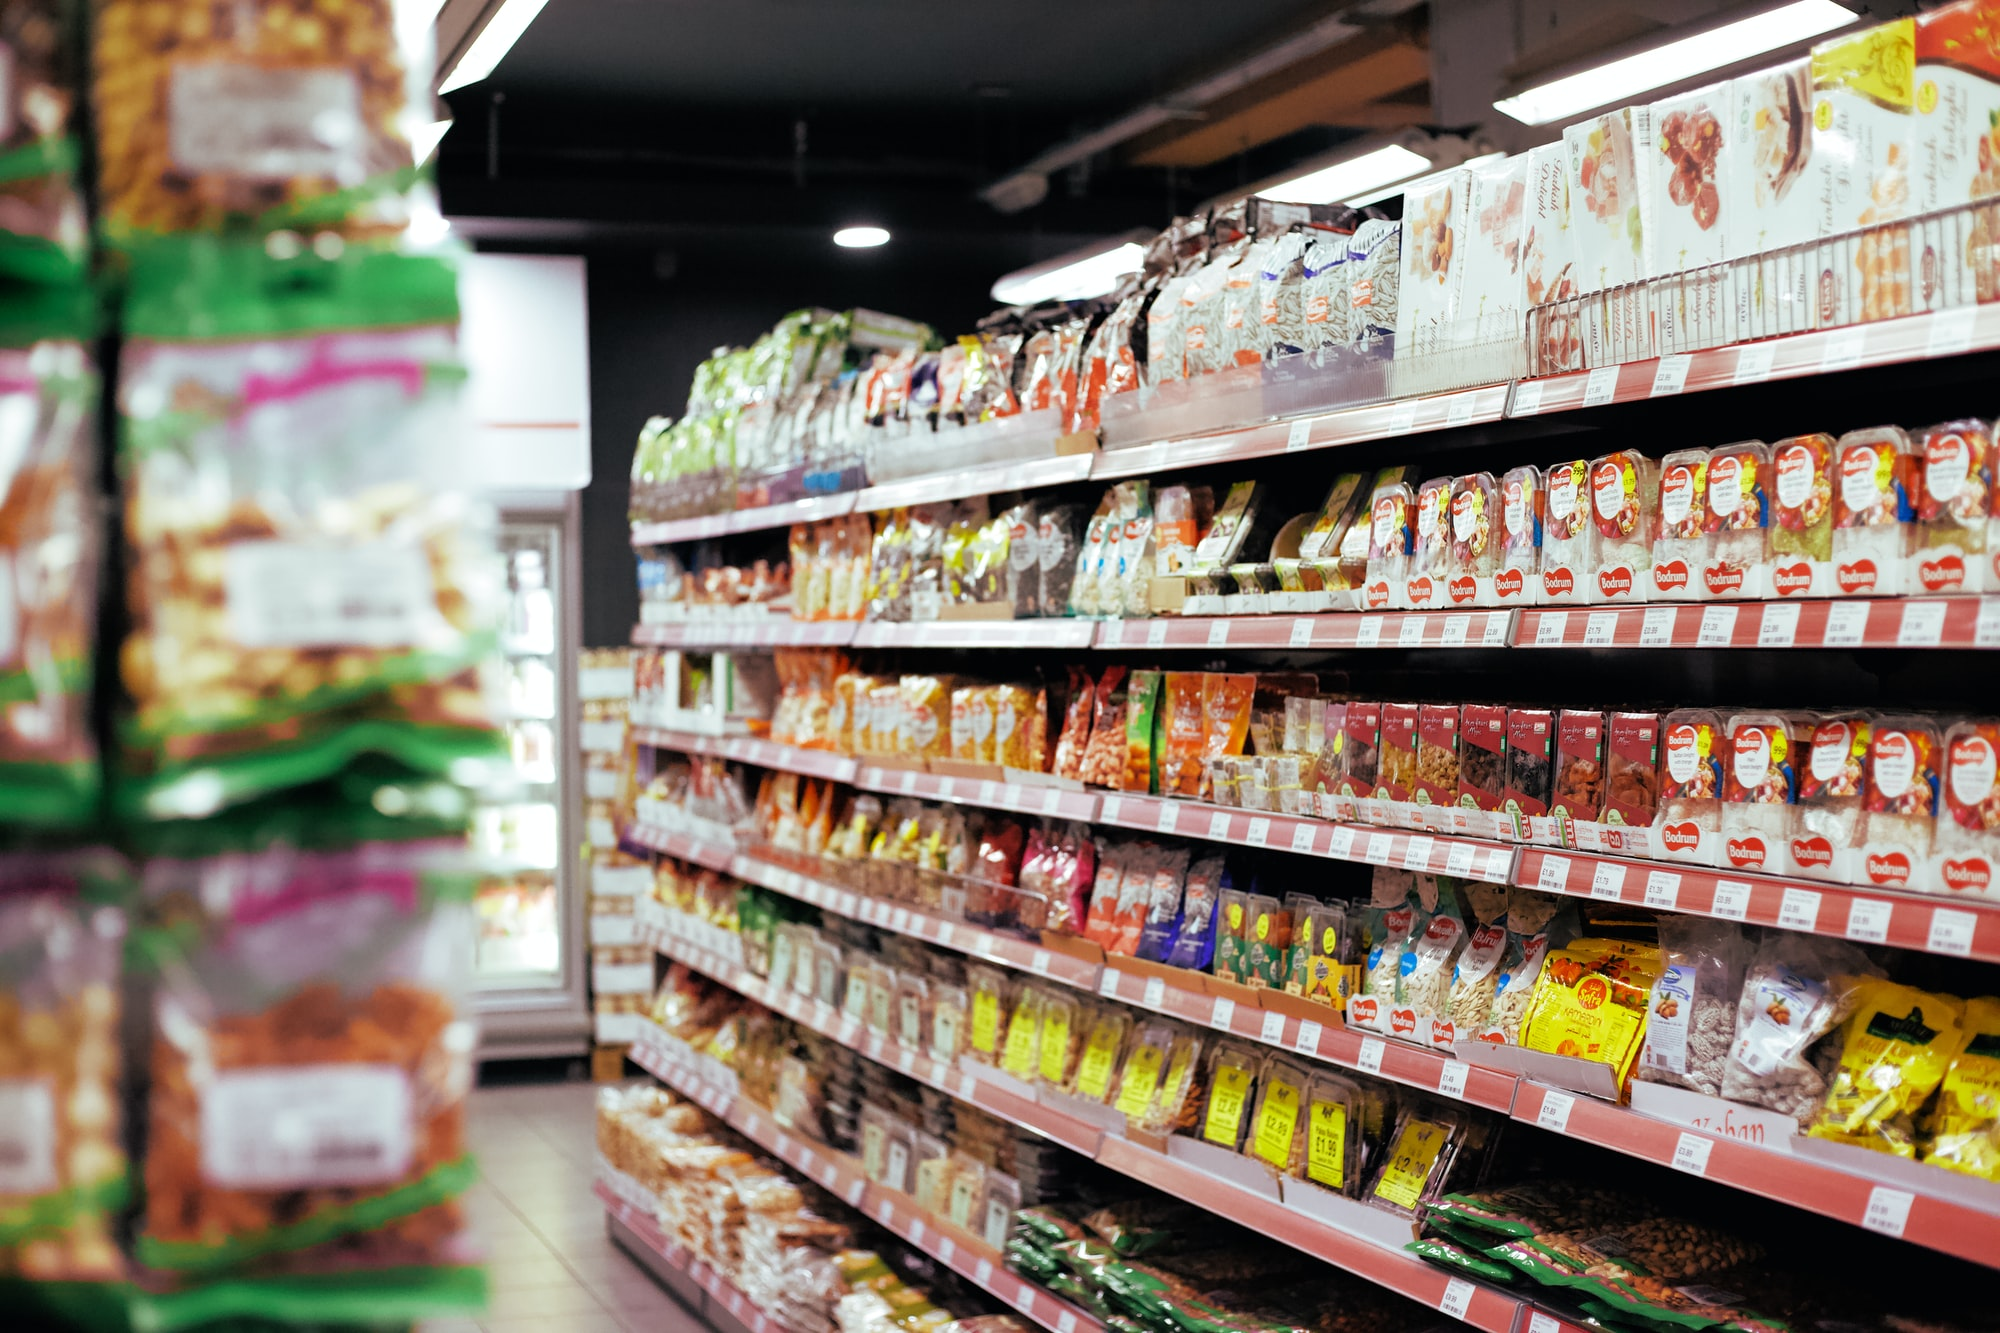 A supermarket aisle with dry ingredients.